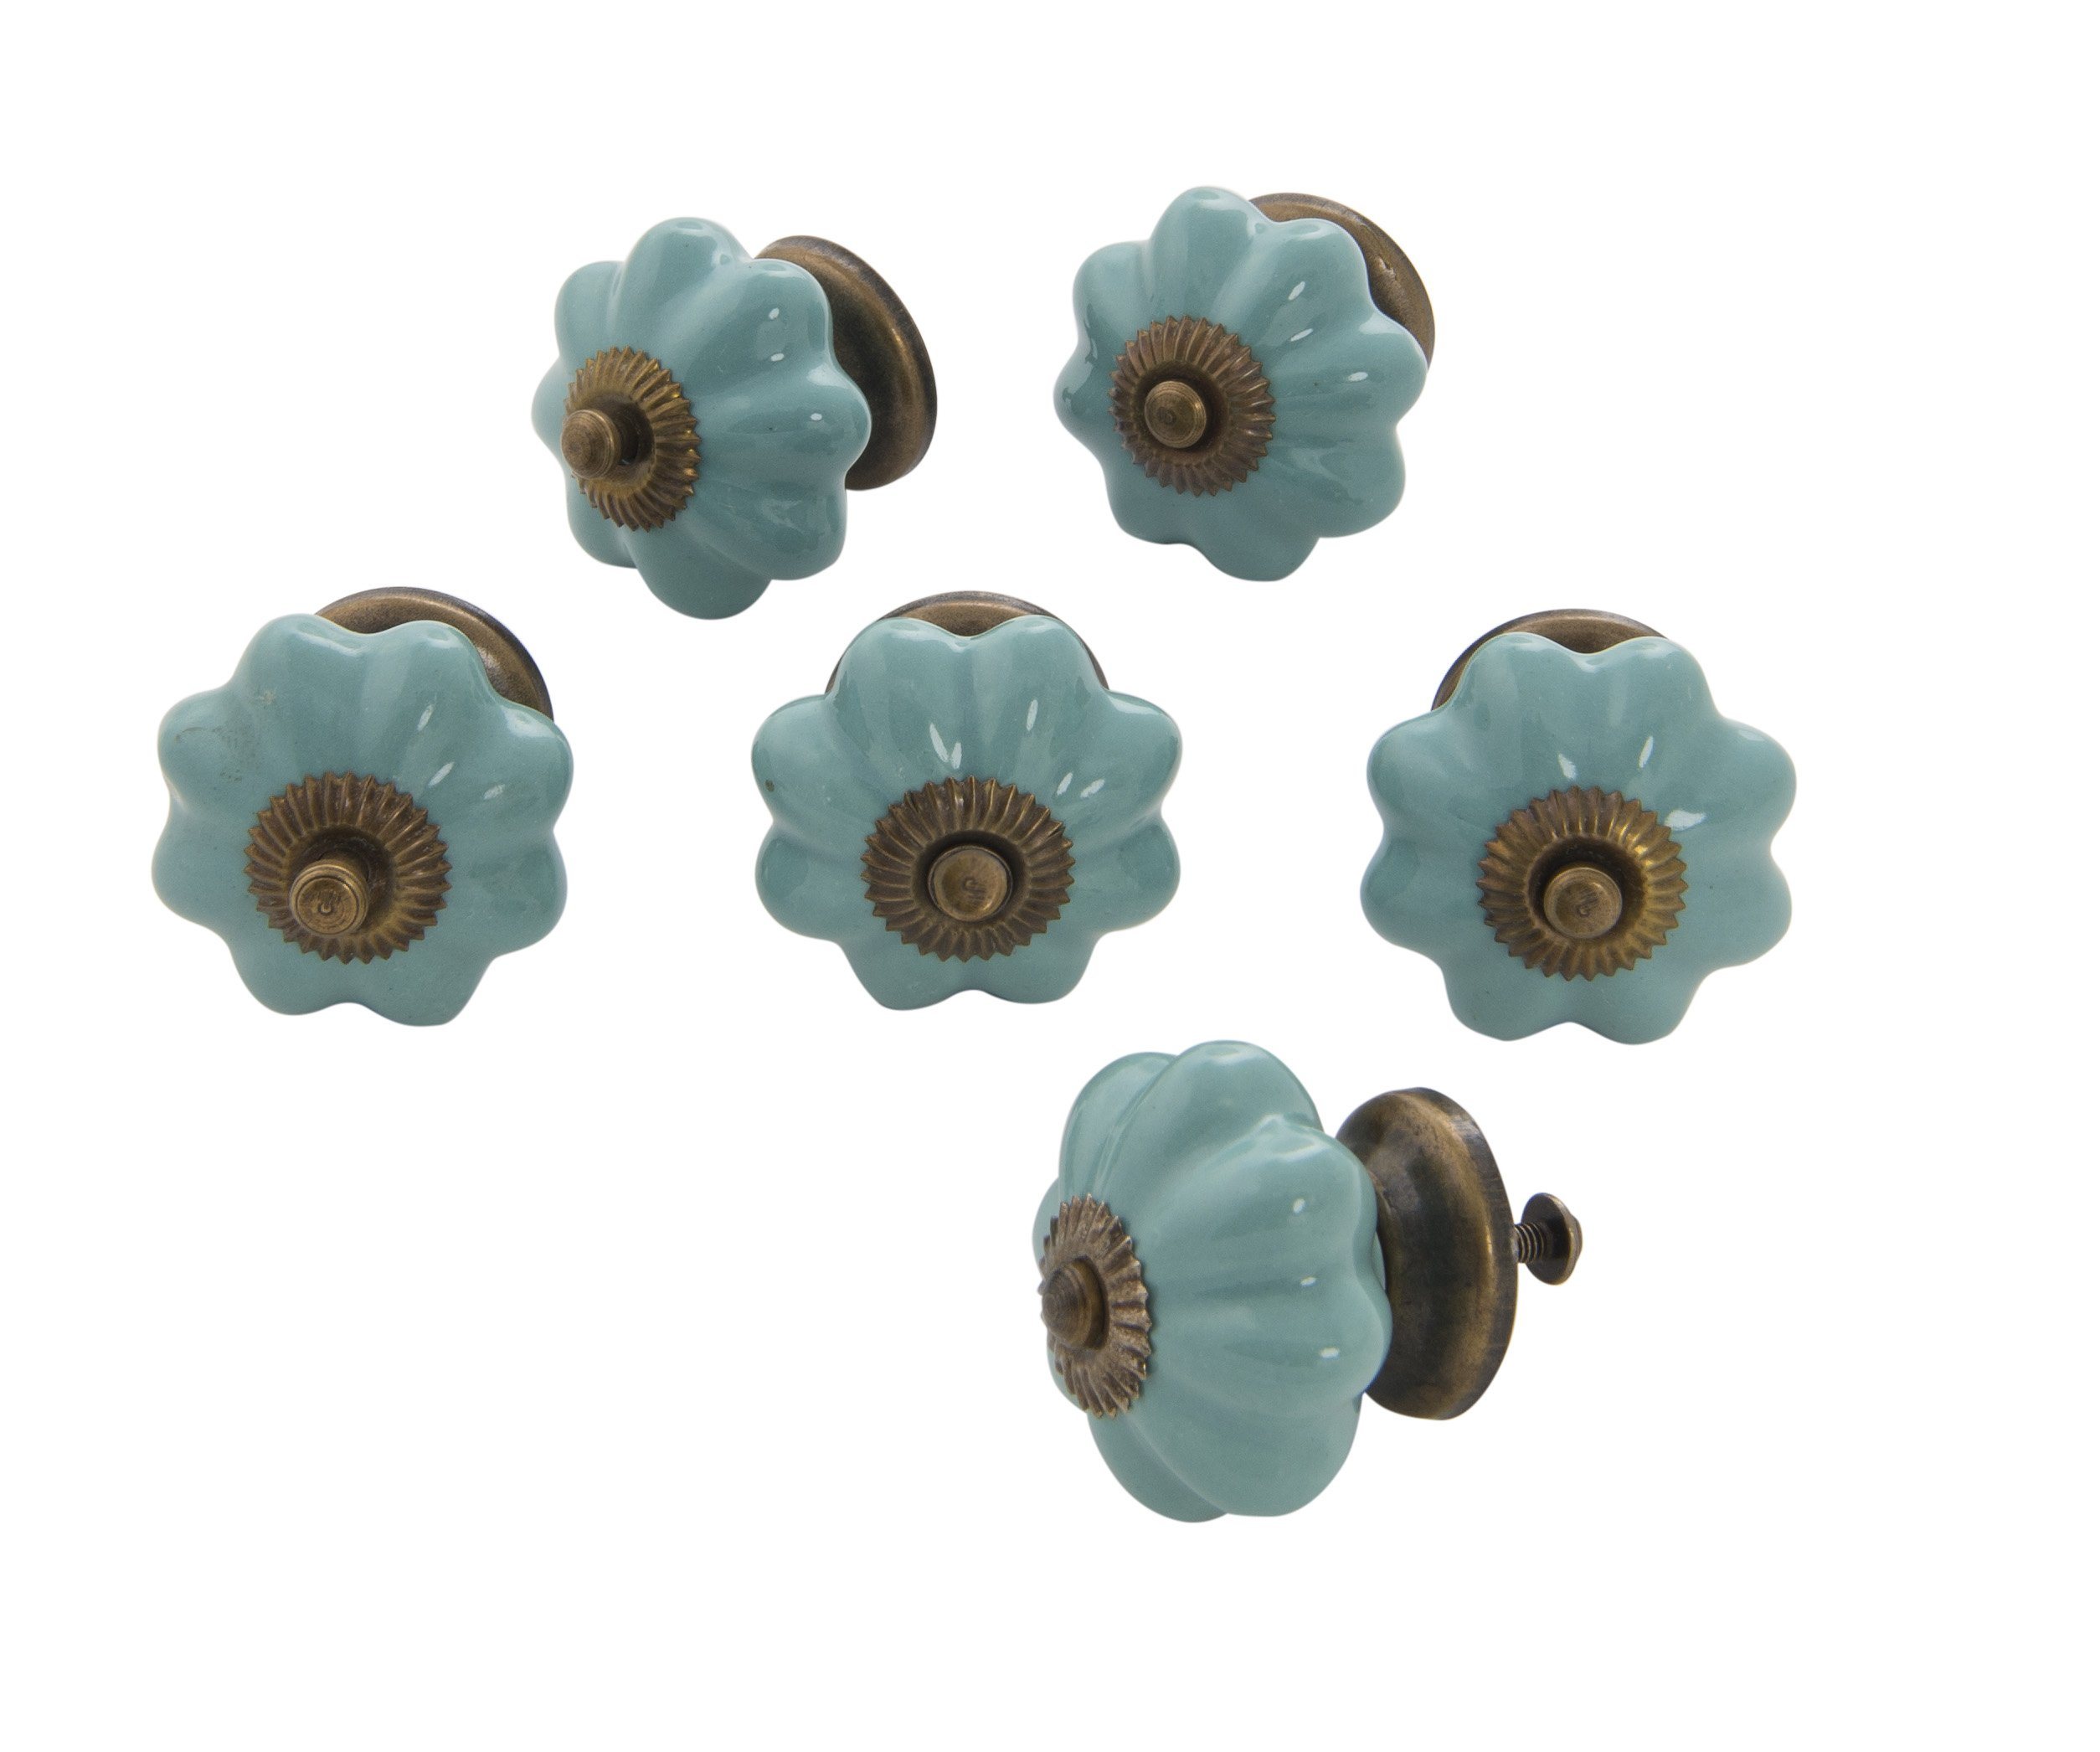 Dritz Home 47043A Ceramic Scallop Knob Handcrafted Knobs for Cabinets & Drawers